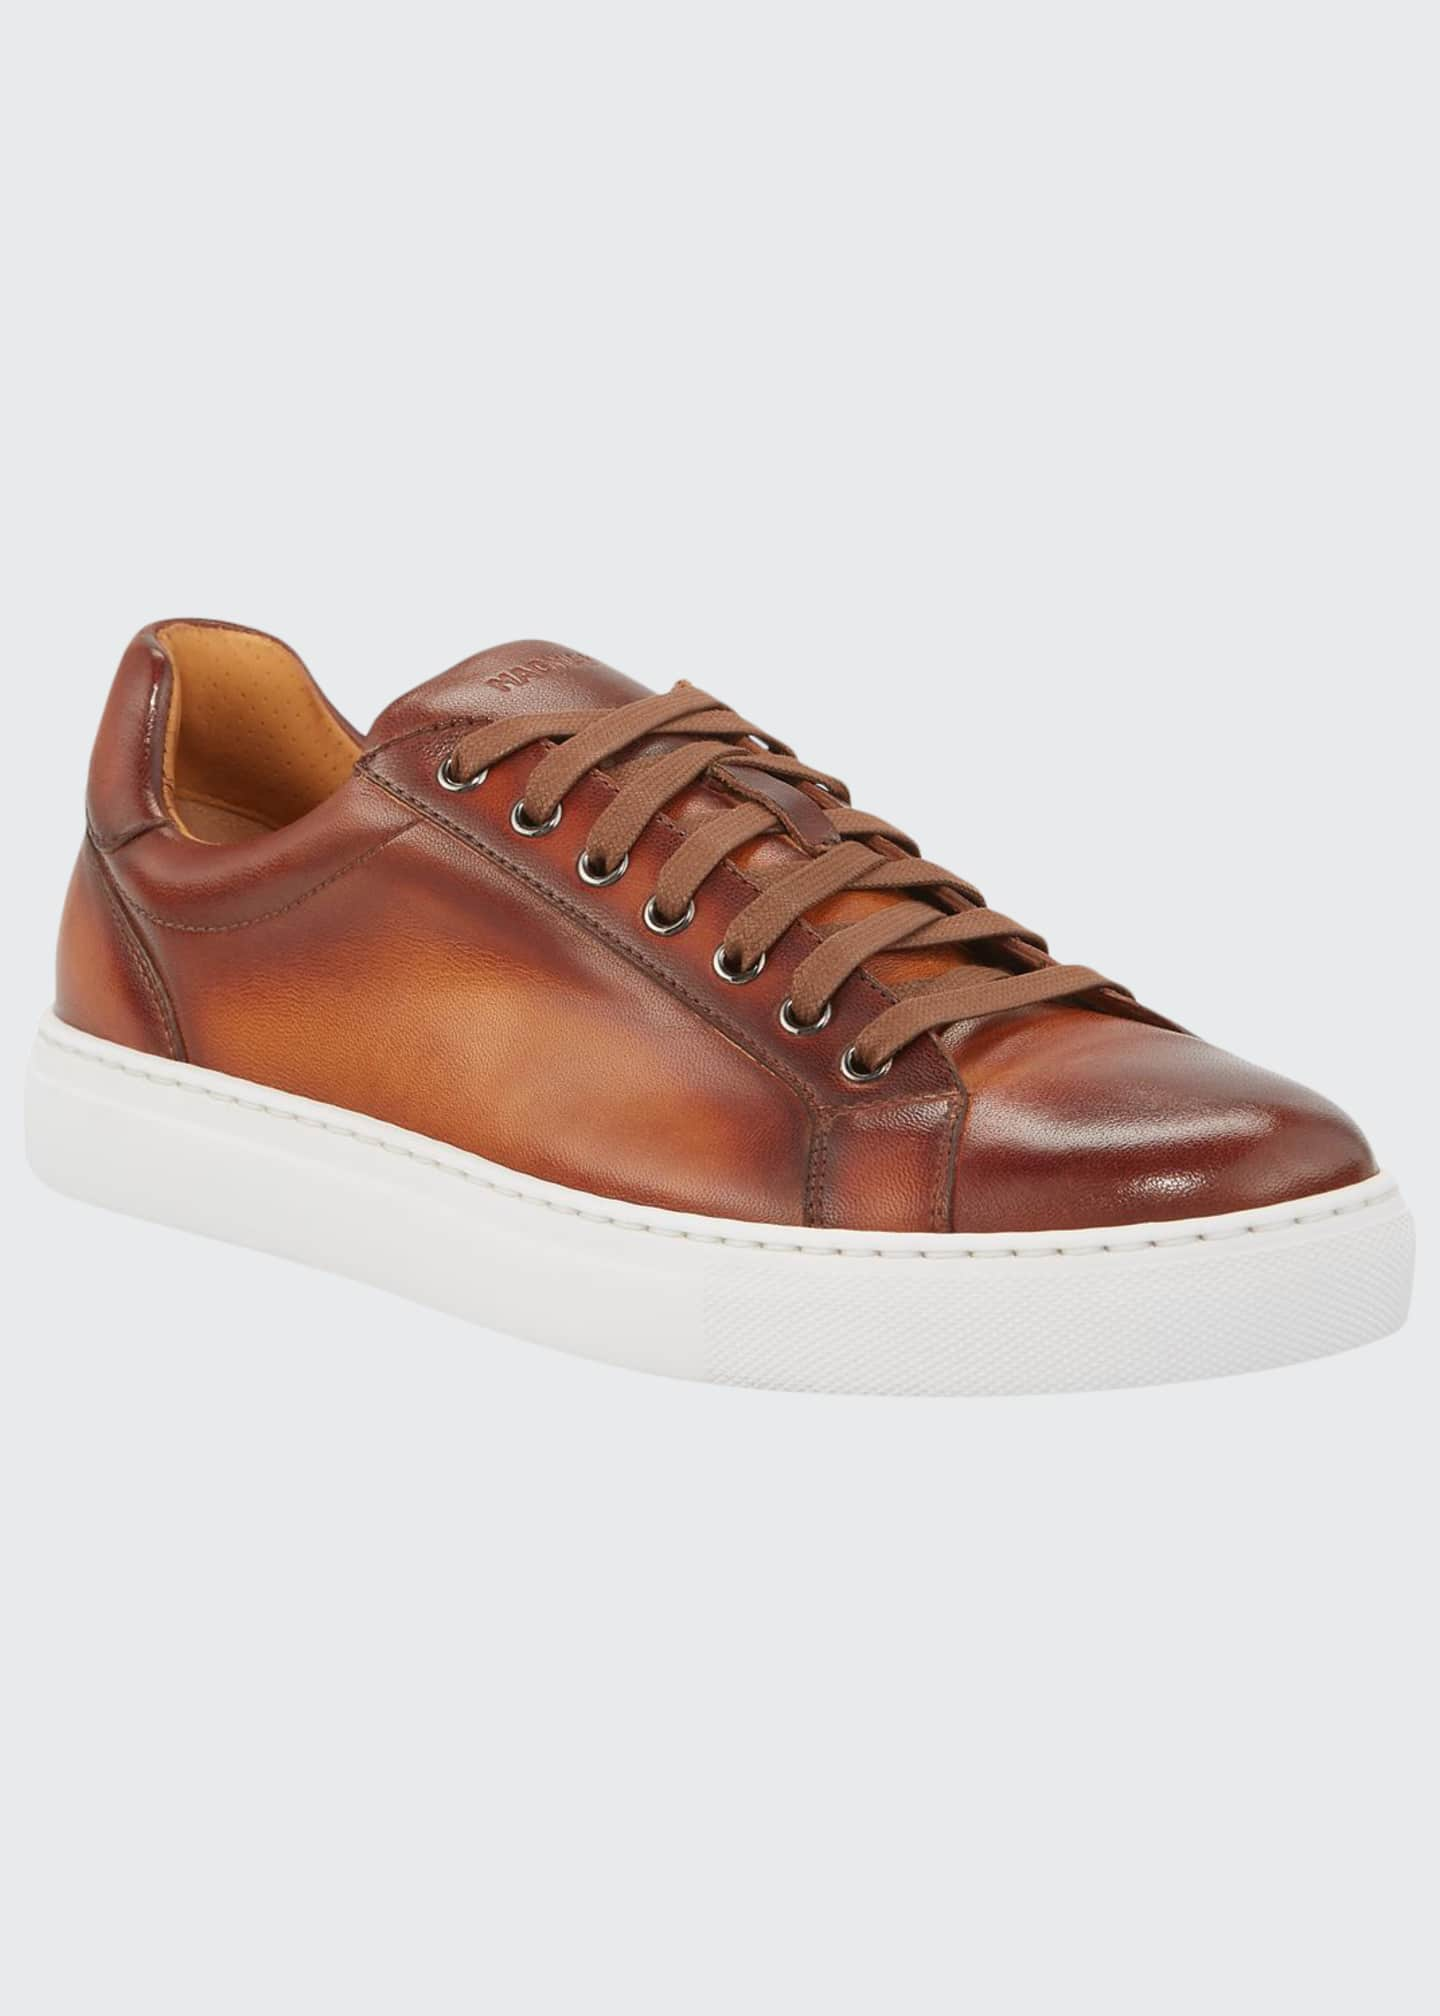 Image 1 of 3: Men's Napa Leather Low-Top Sneakers